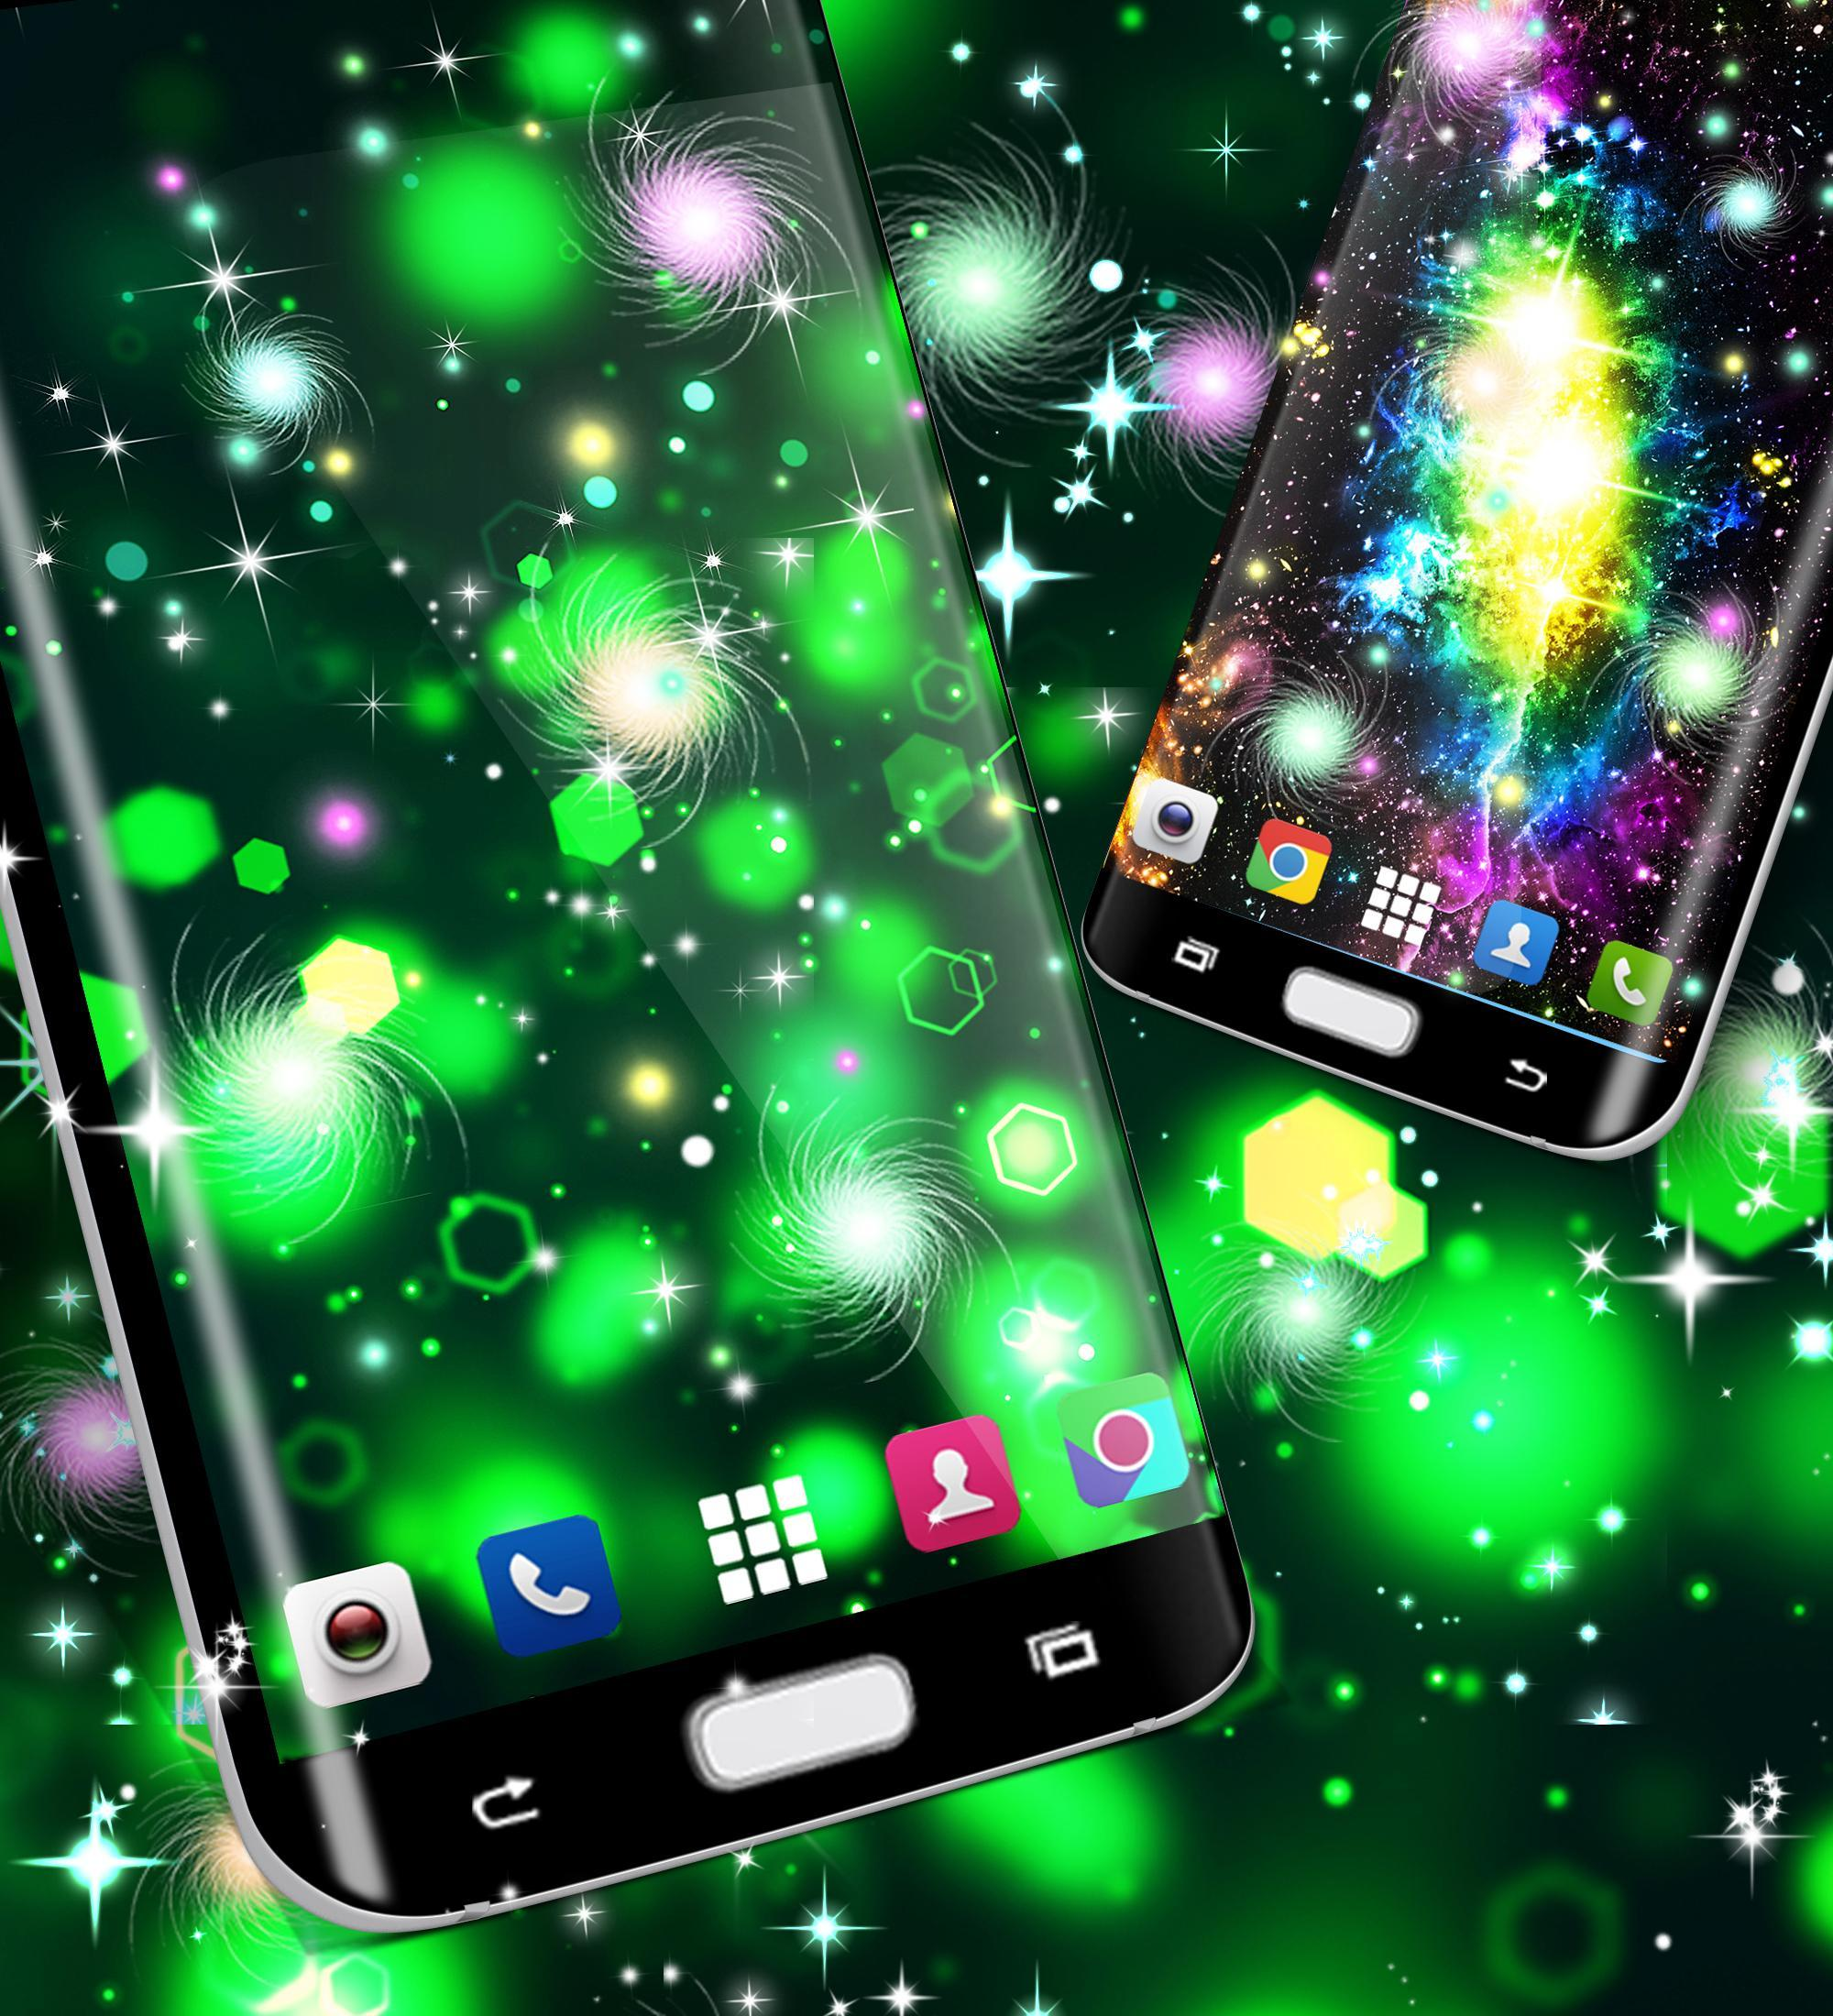 Glowing live wallpaper for Android - APK Download